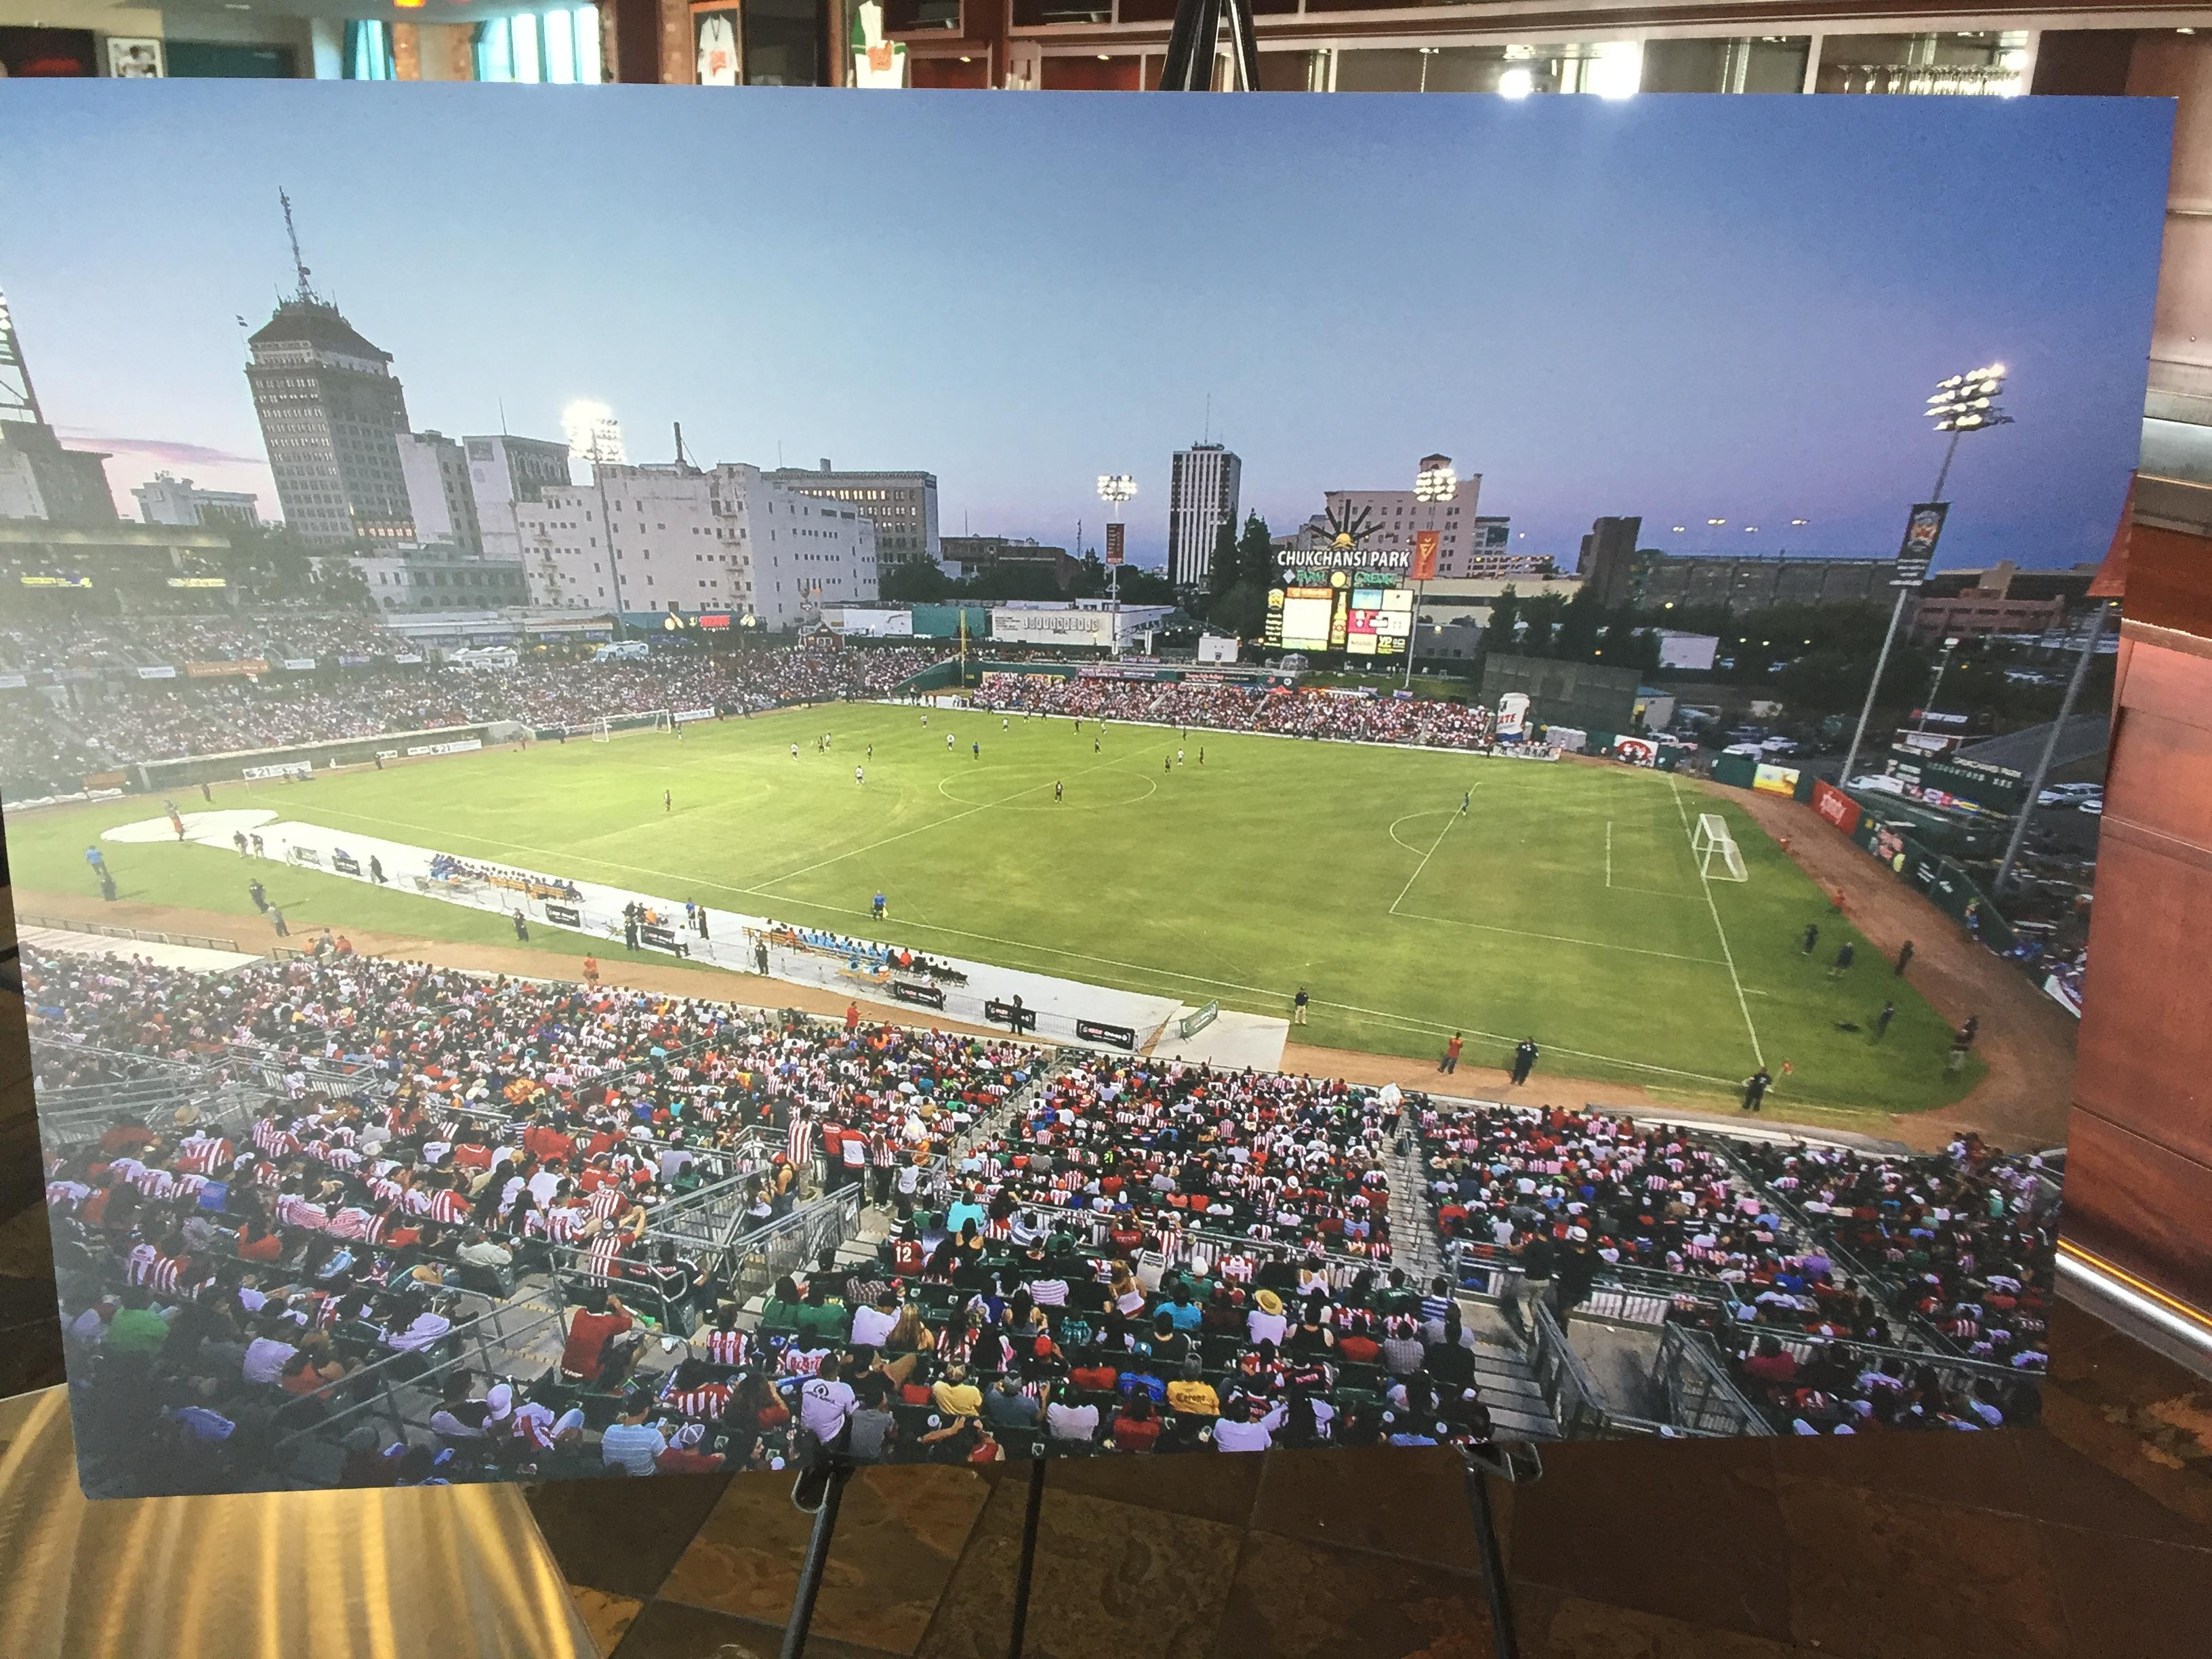 Beshoff says the team will play at Chukchansi Park for the first two seasons, and possibly more. The field will be converted to look more like a soccer stadium, something similar to what's seen in this picture.